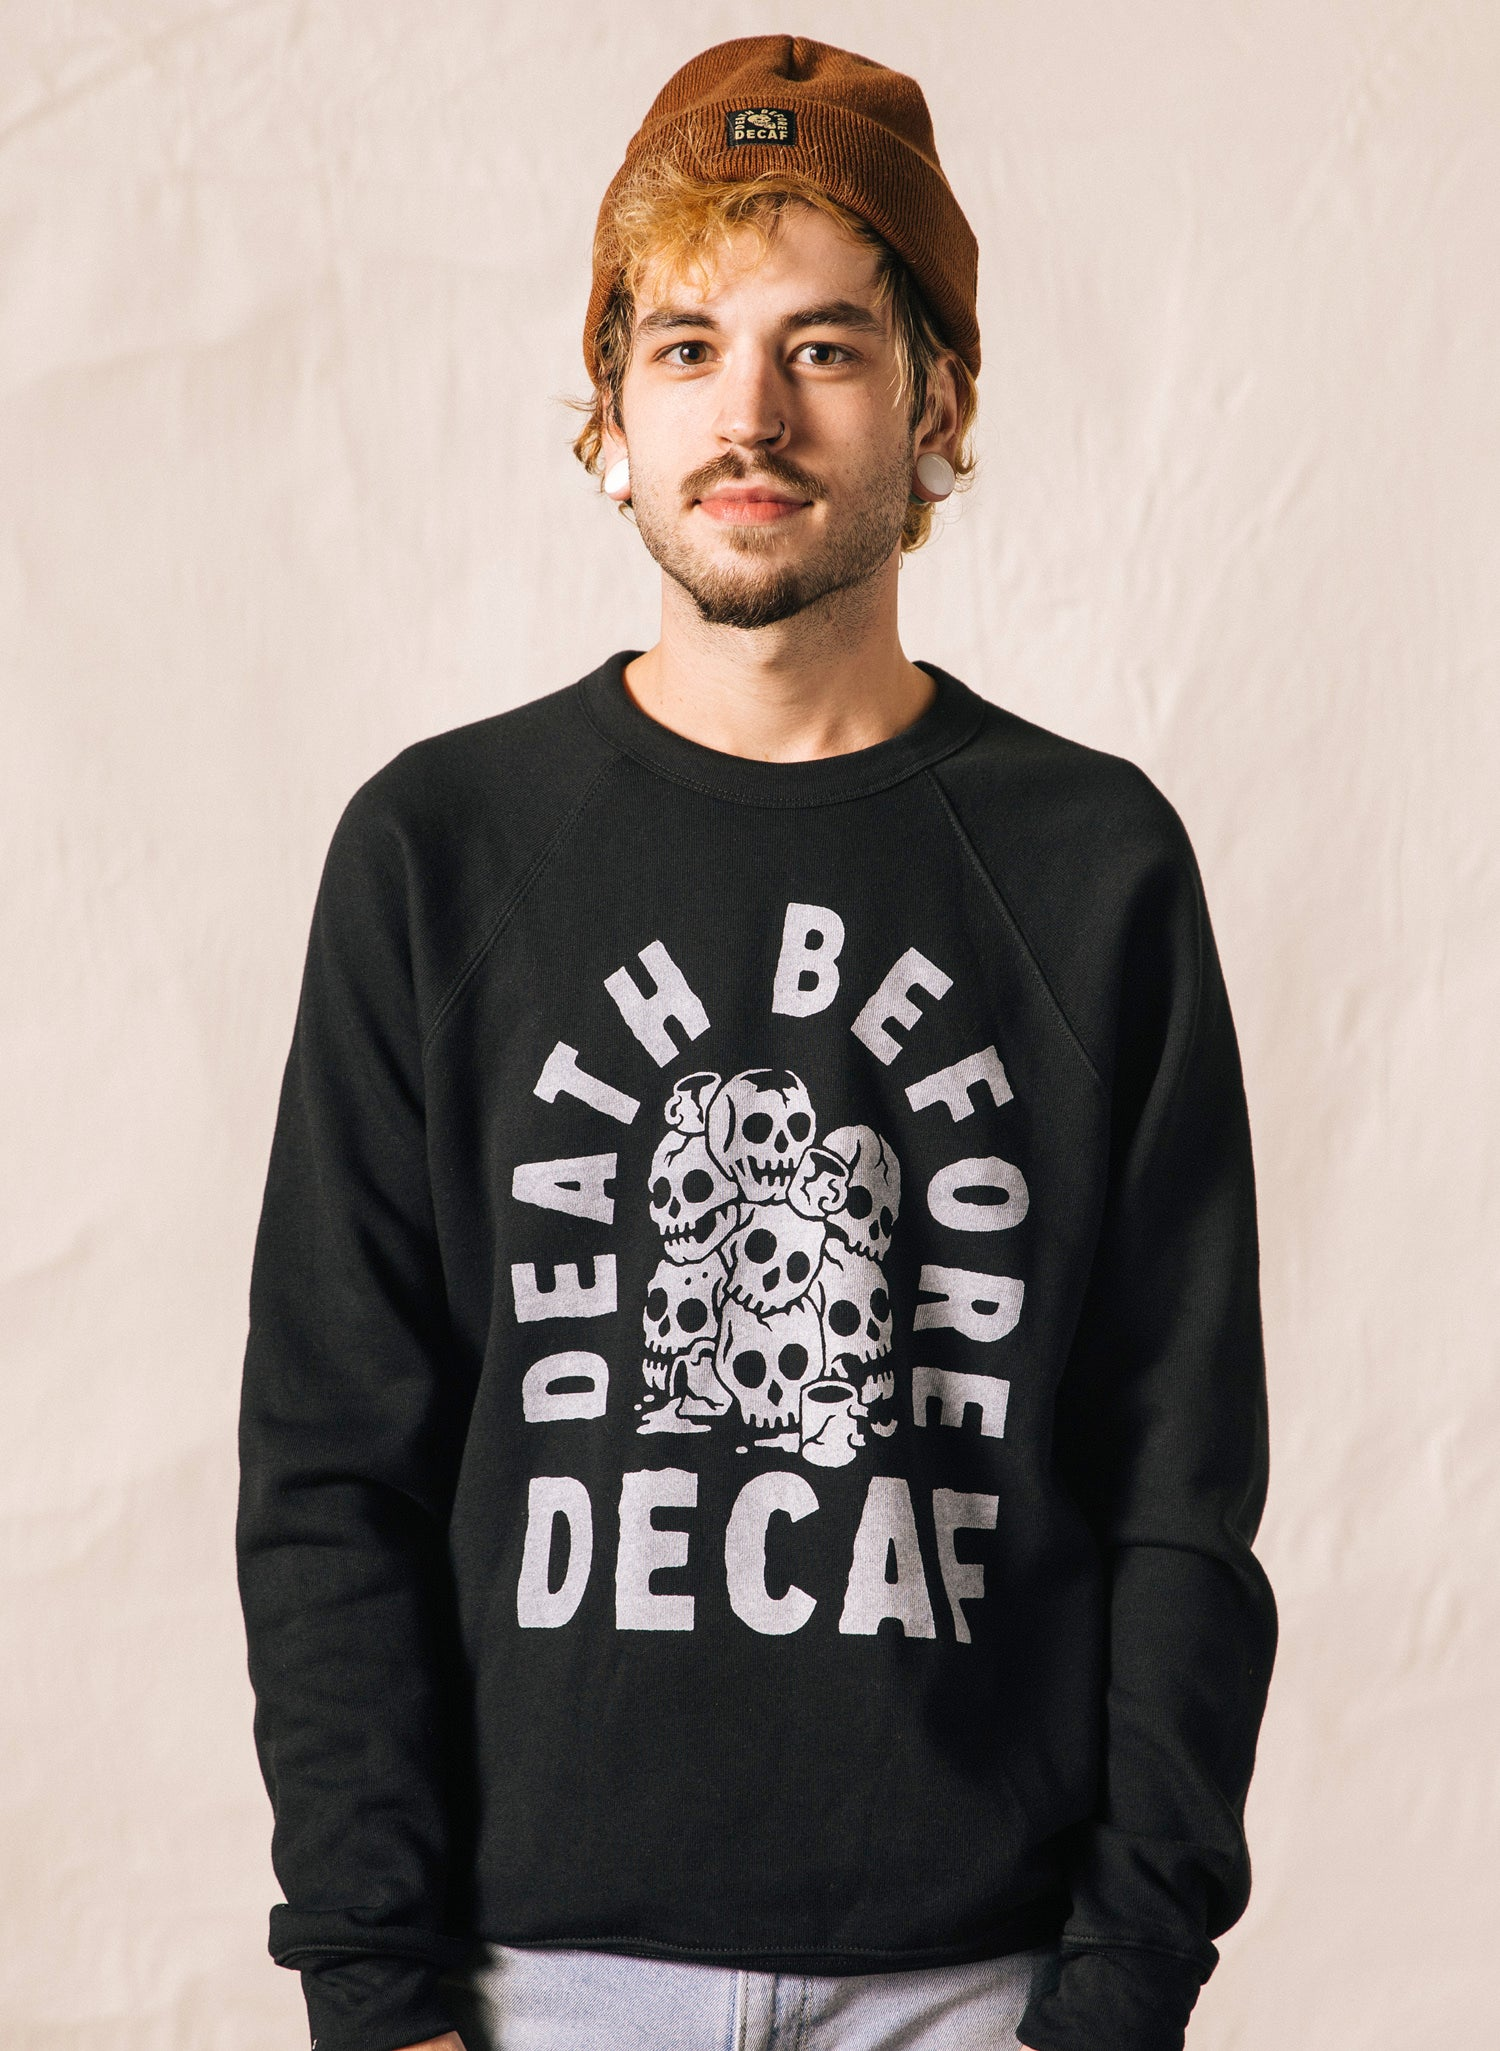 Death Before Decaf Coffee Black Pullover Crewneck Sweatshirt Skulls Catacomb Coffee Mugs Caffeine Barista